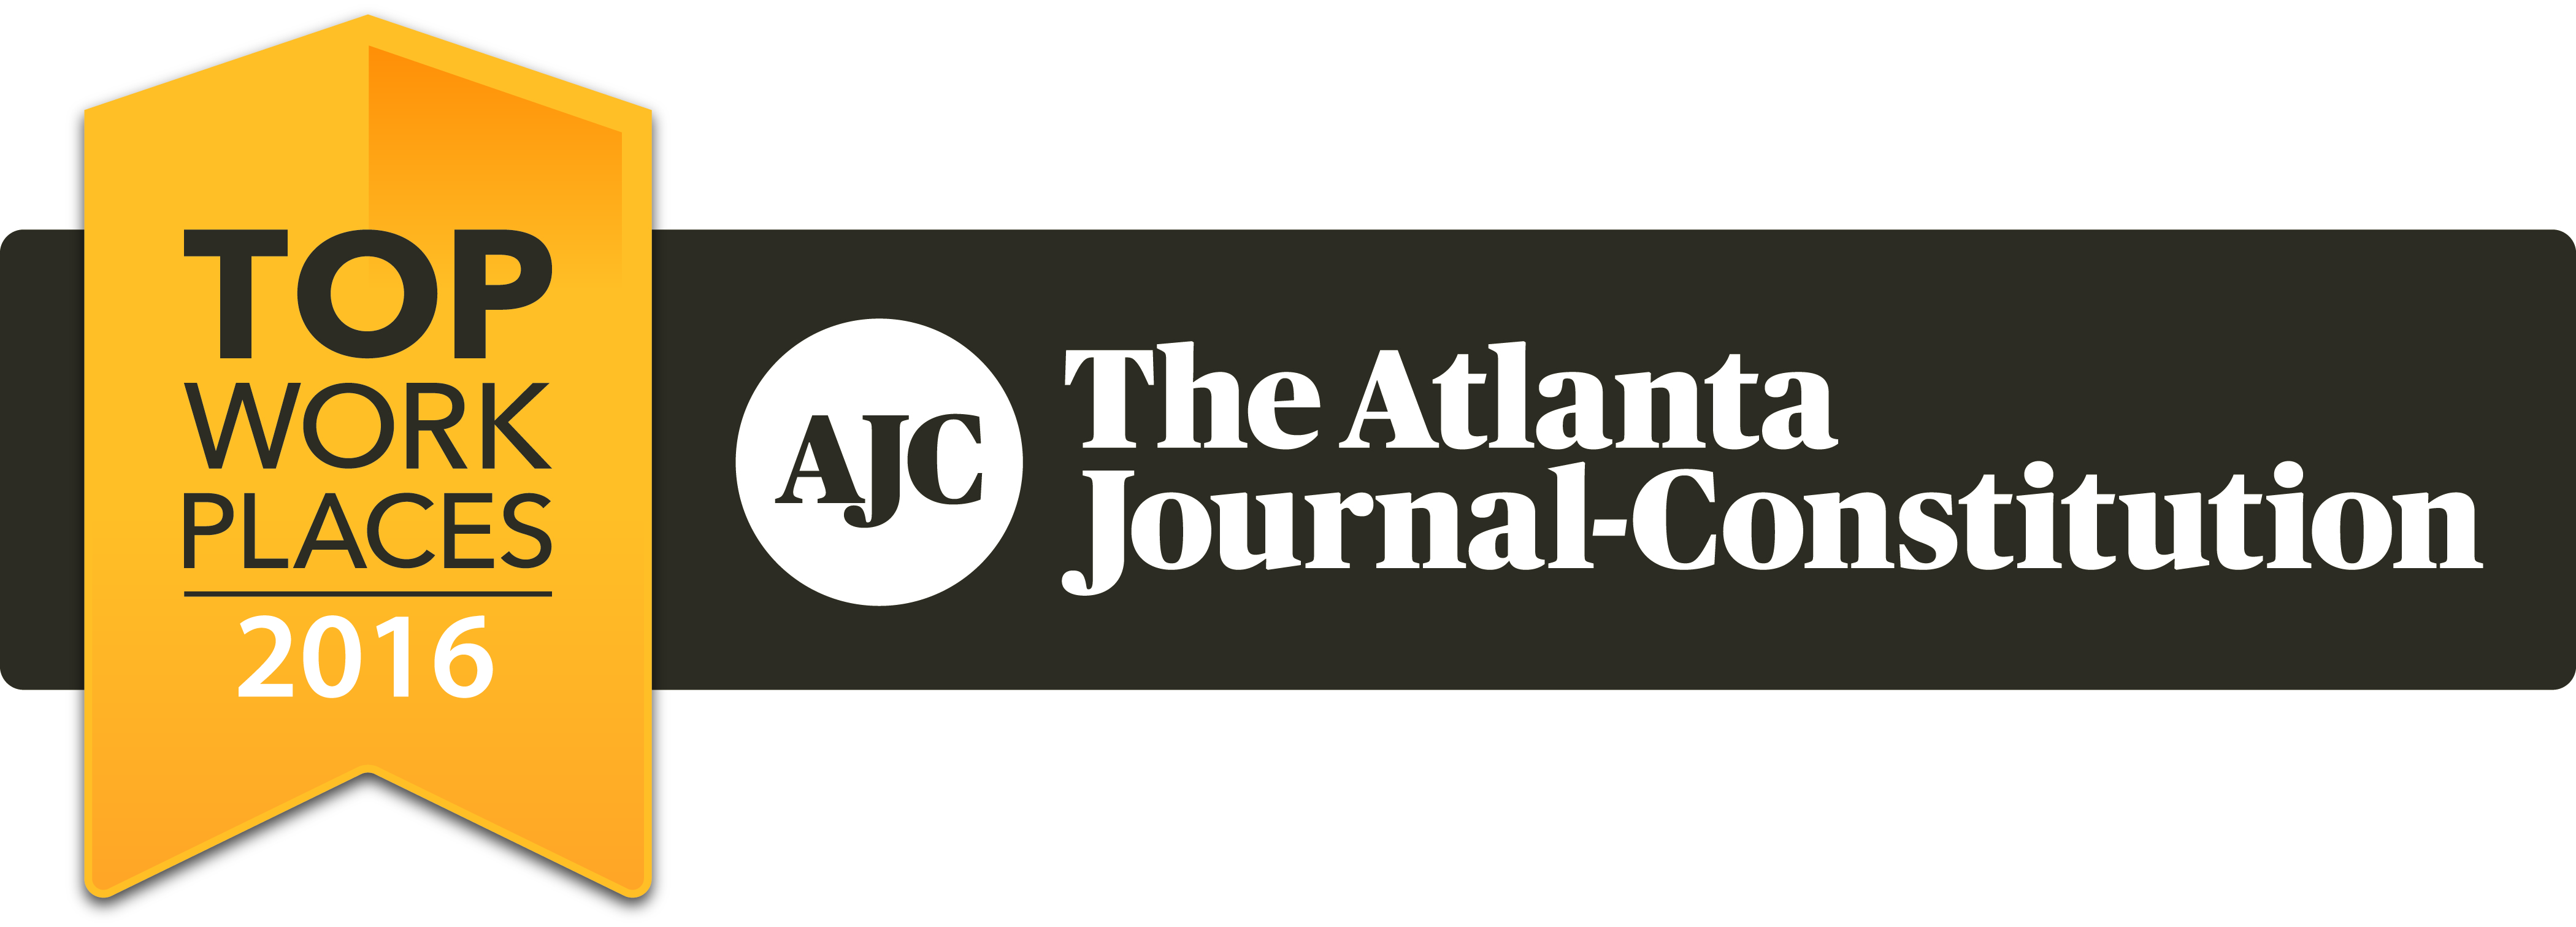 Atlanta Journal-Constitution Top Workplace